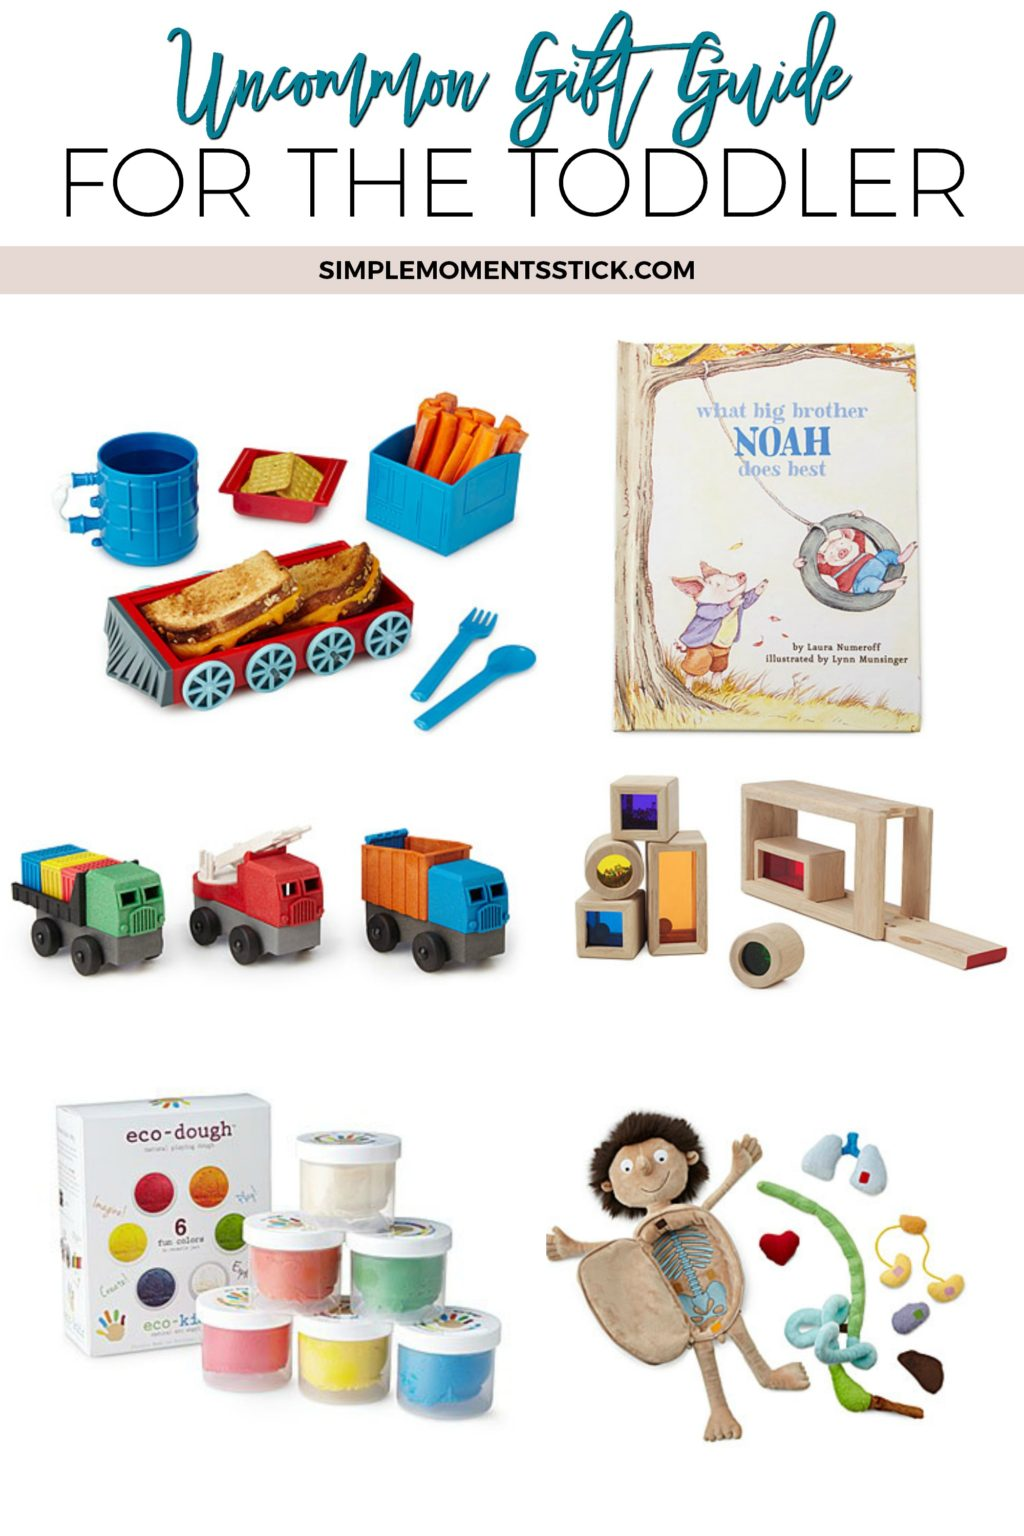 Check out this fantastic gift guide for your favorite toddler!